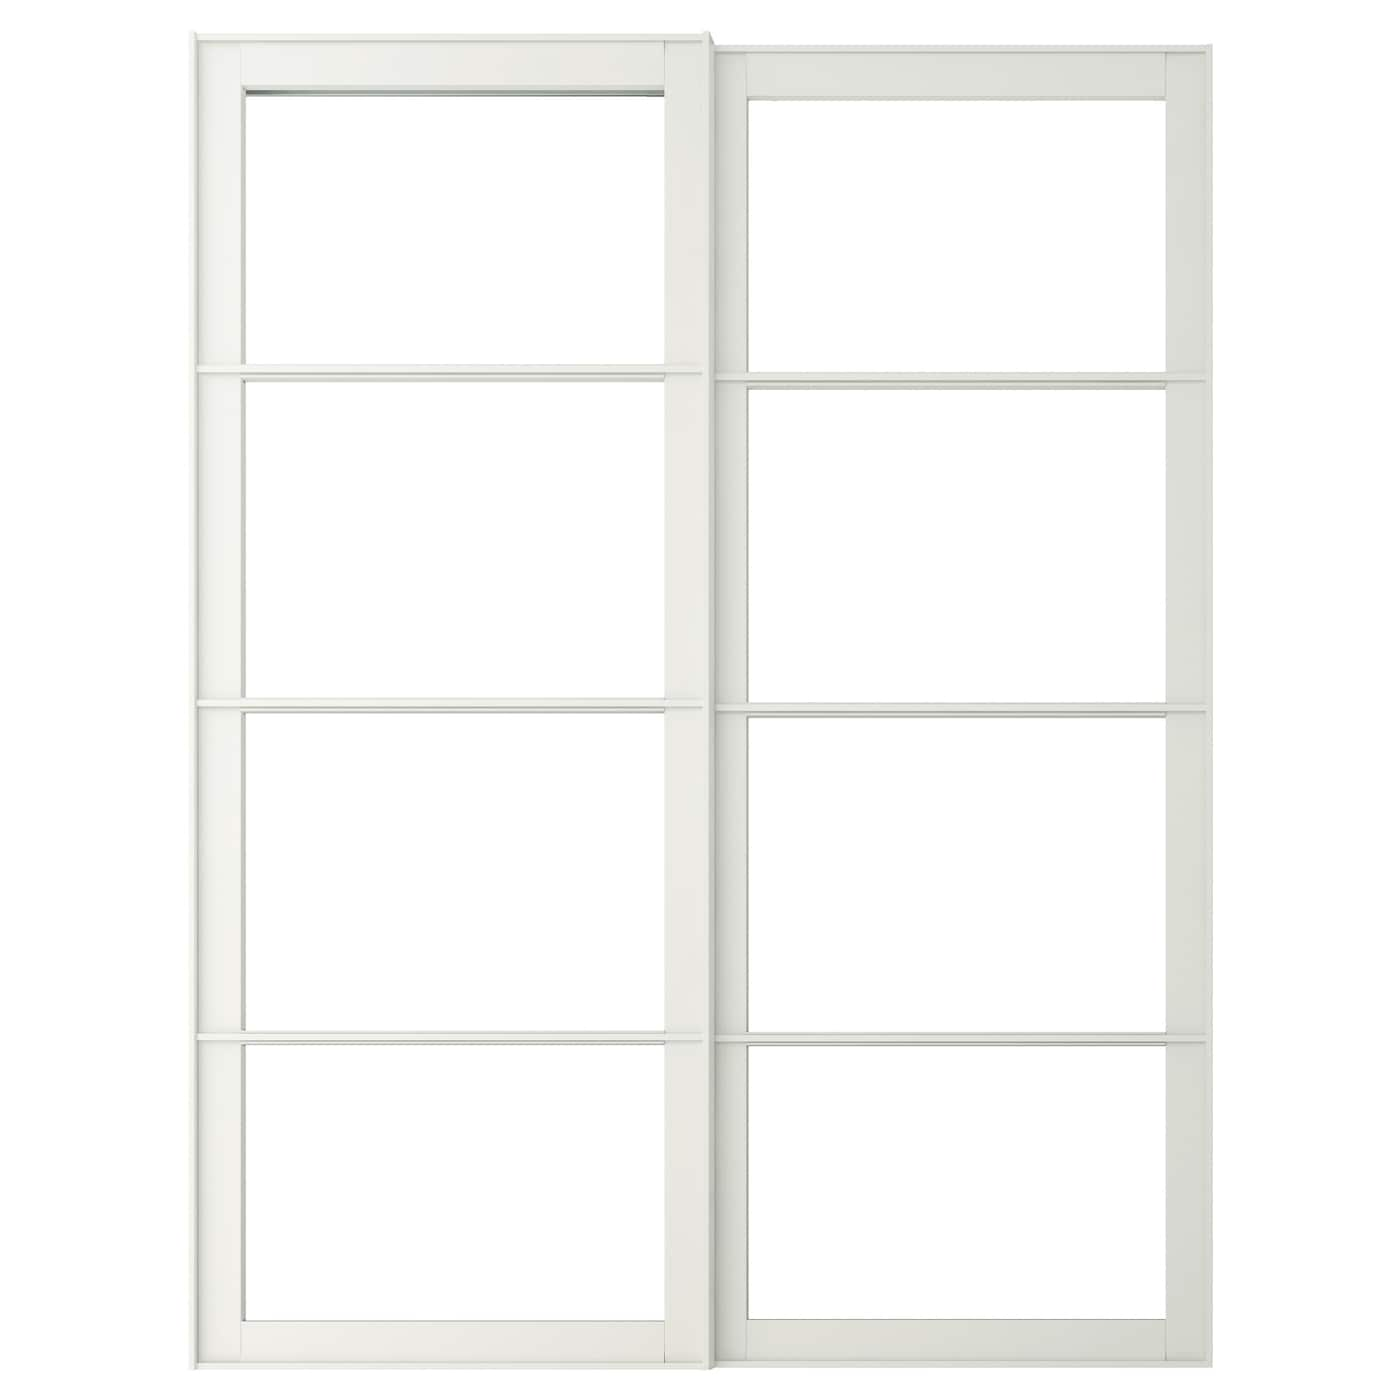 pax cadre porte coulissante 2pces blanc 150 x 201 cm ikea. Black Bedroom Furniture Sets. Home Design Ideas